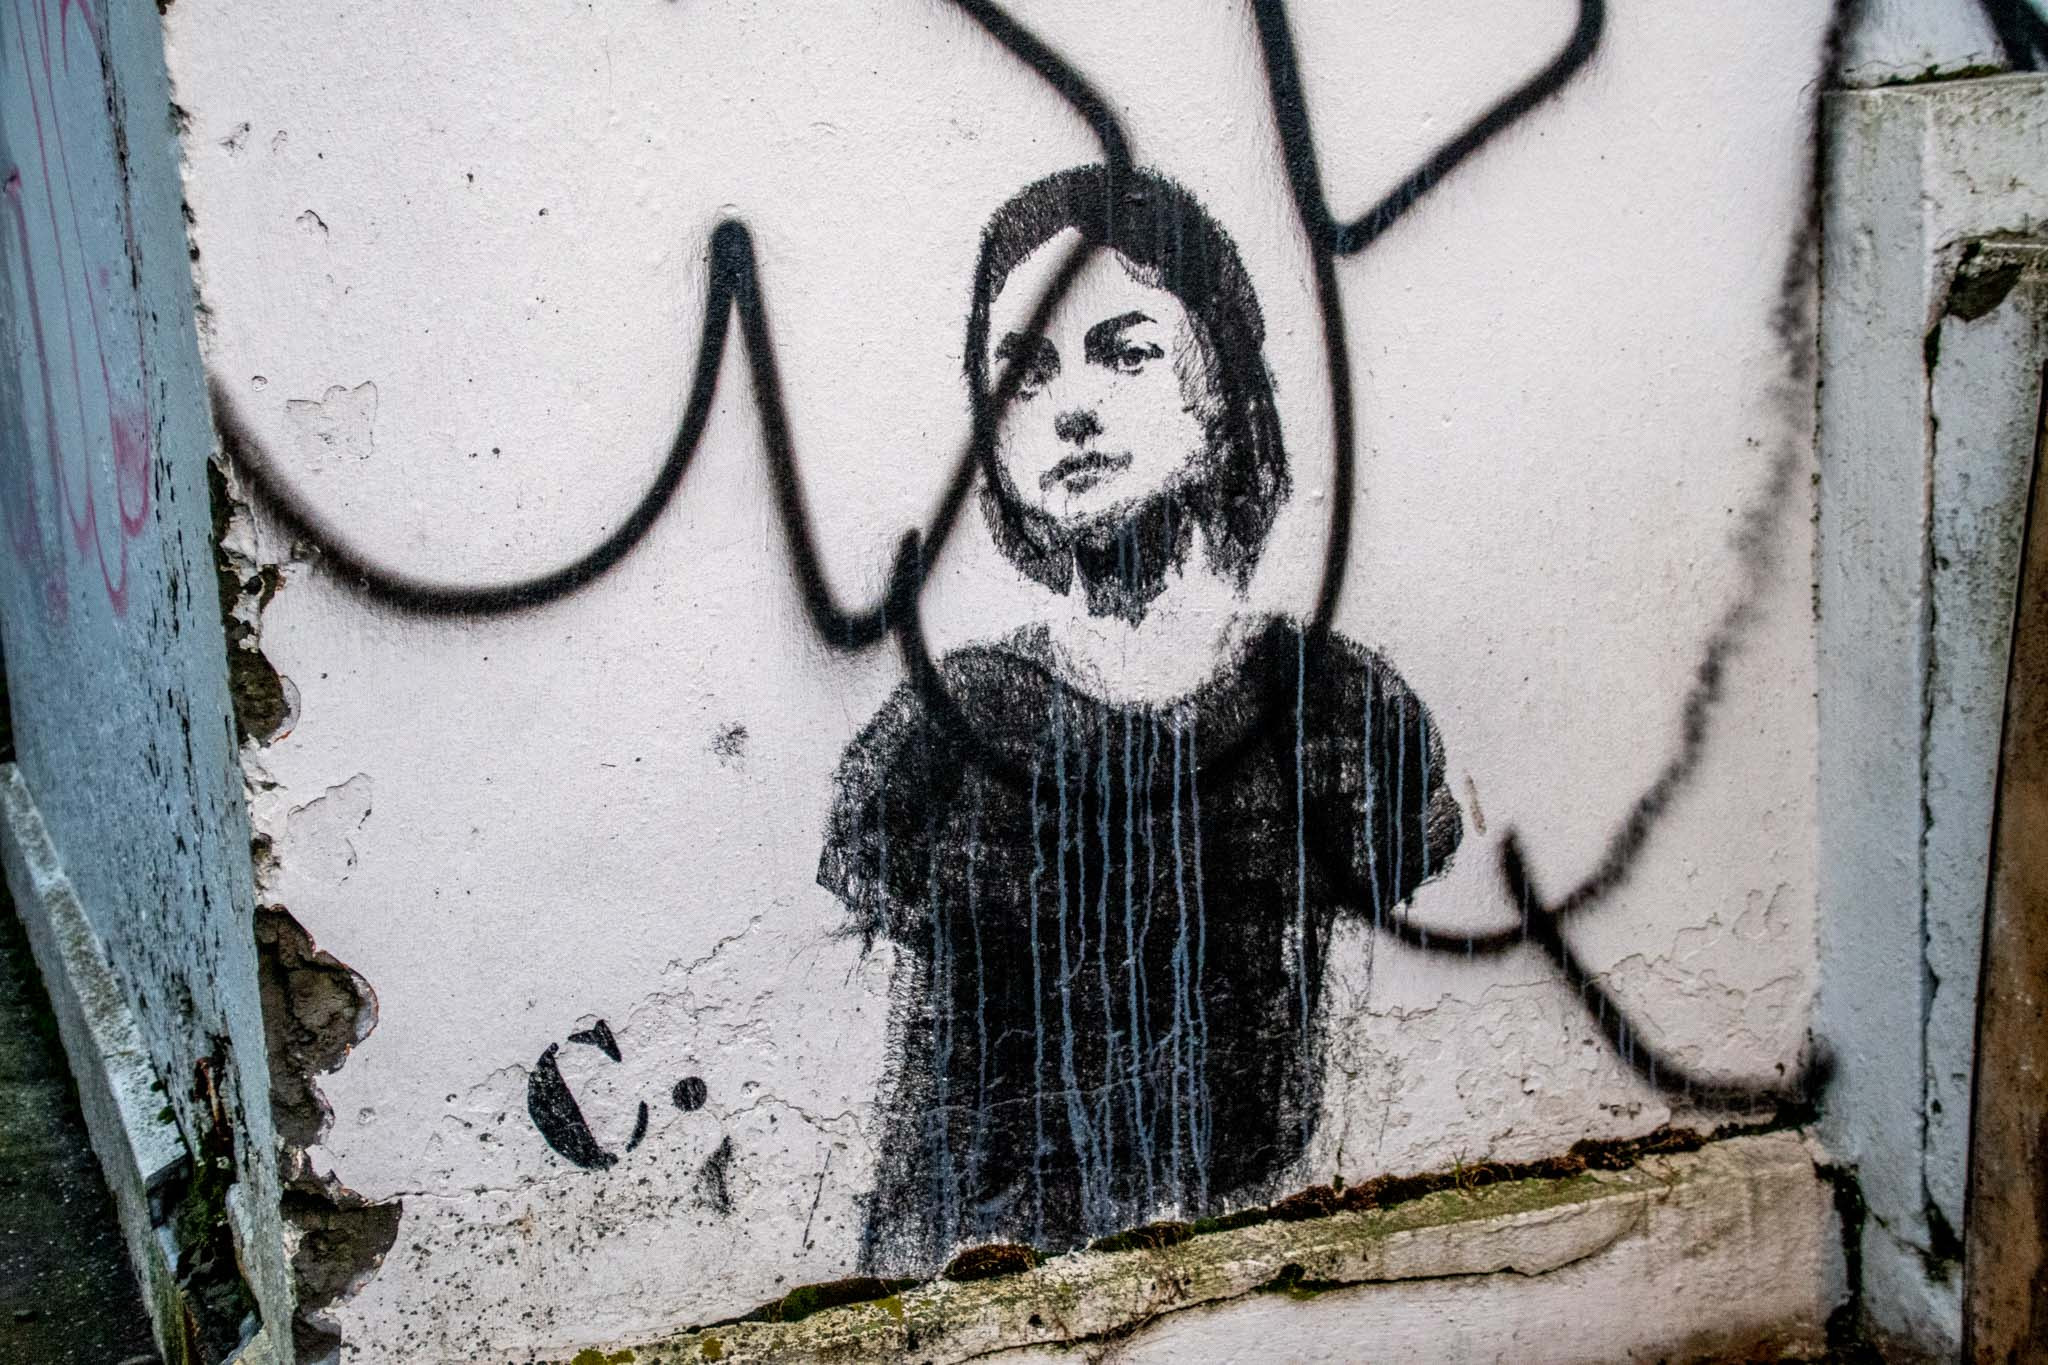 Street art stencil works like this young girl are seen in the Icelandic capital